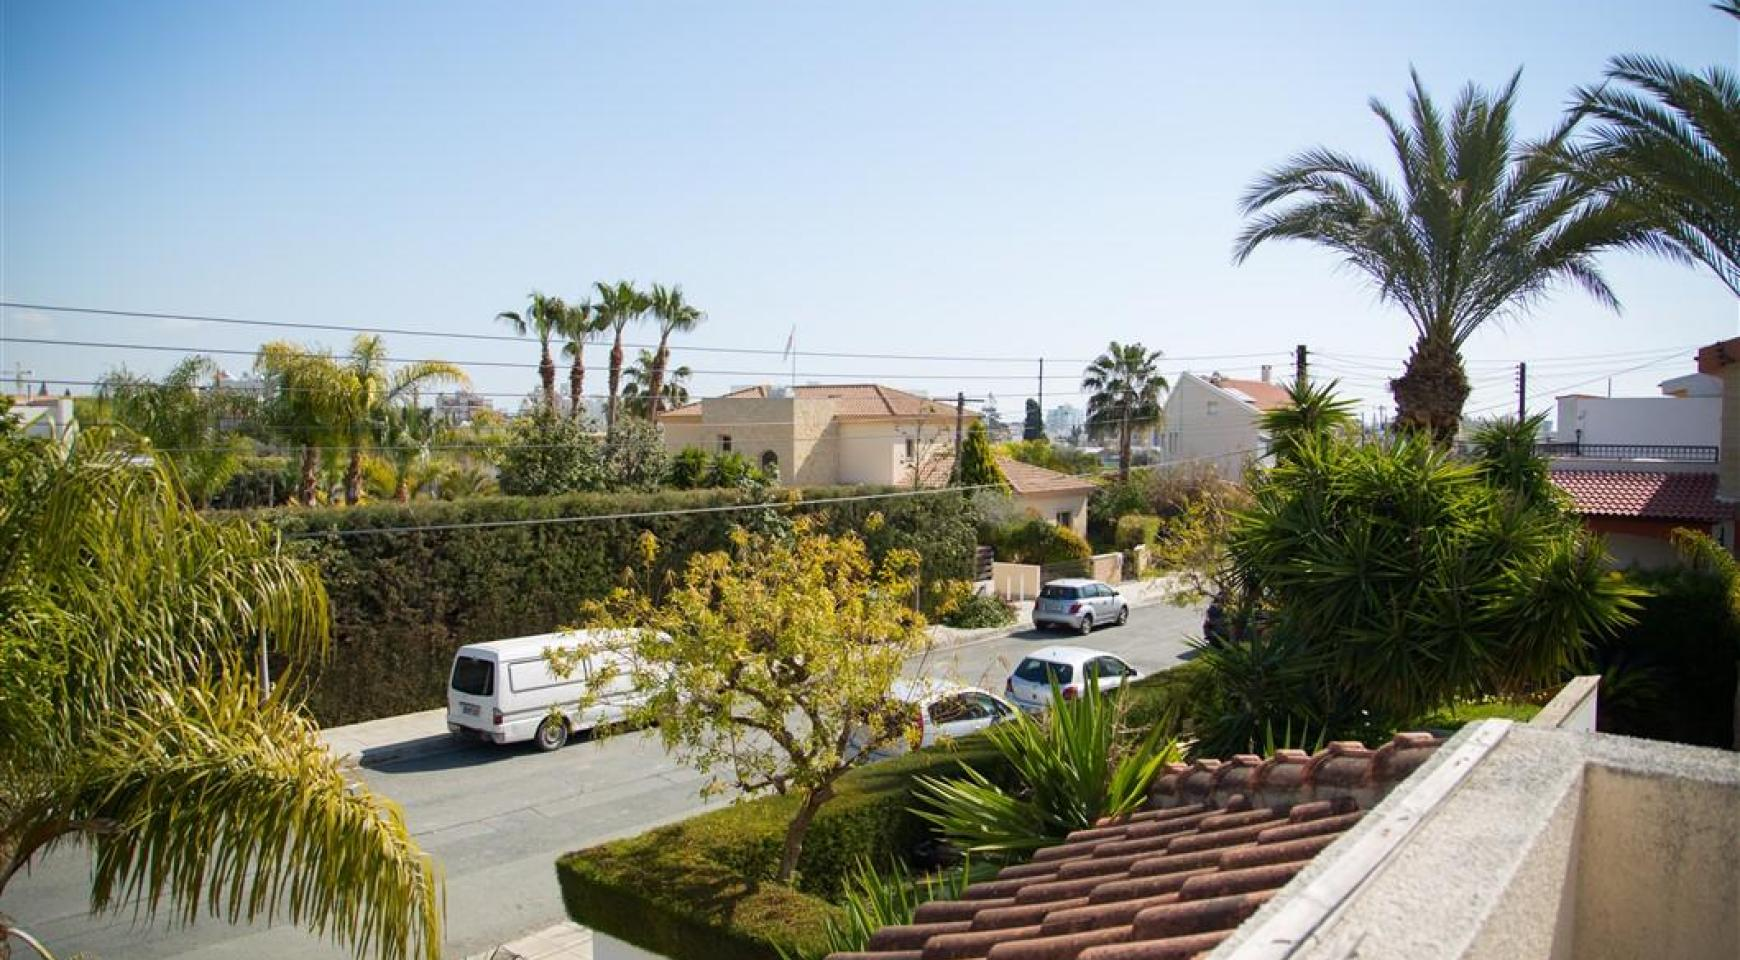 4 Bedroom Villa in Germasogeia Area - 8